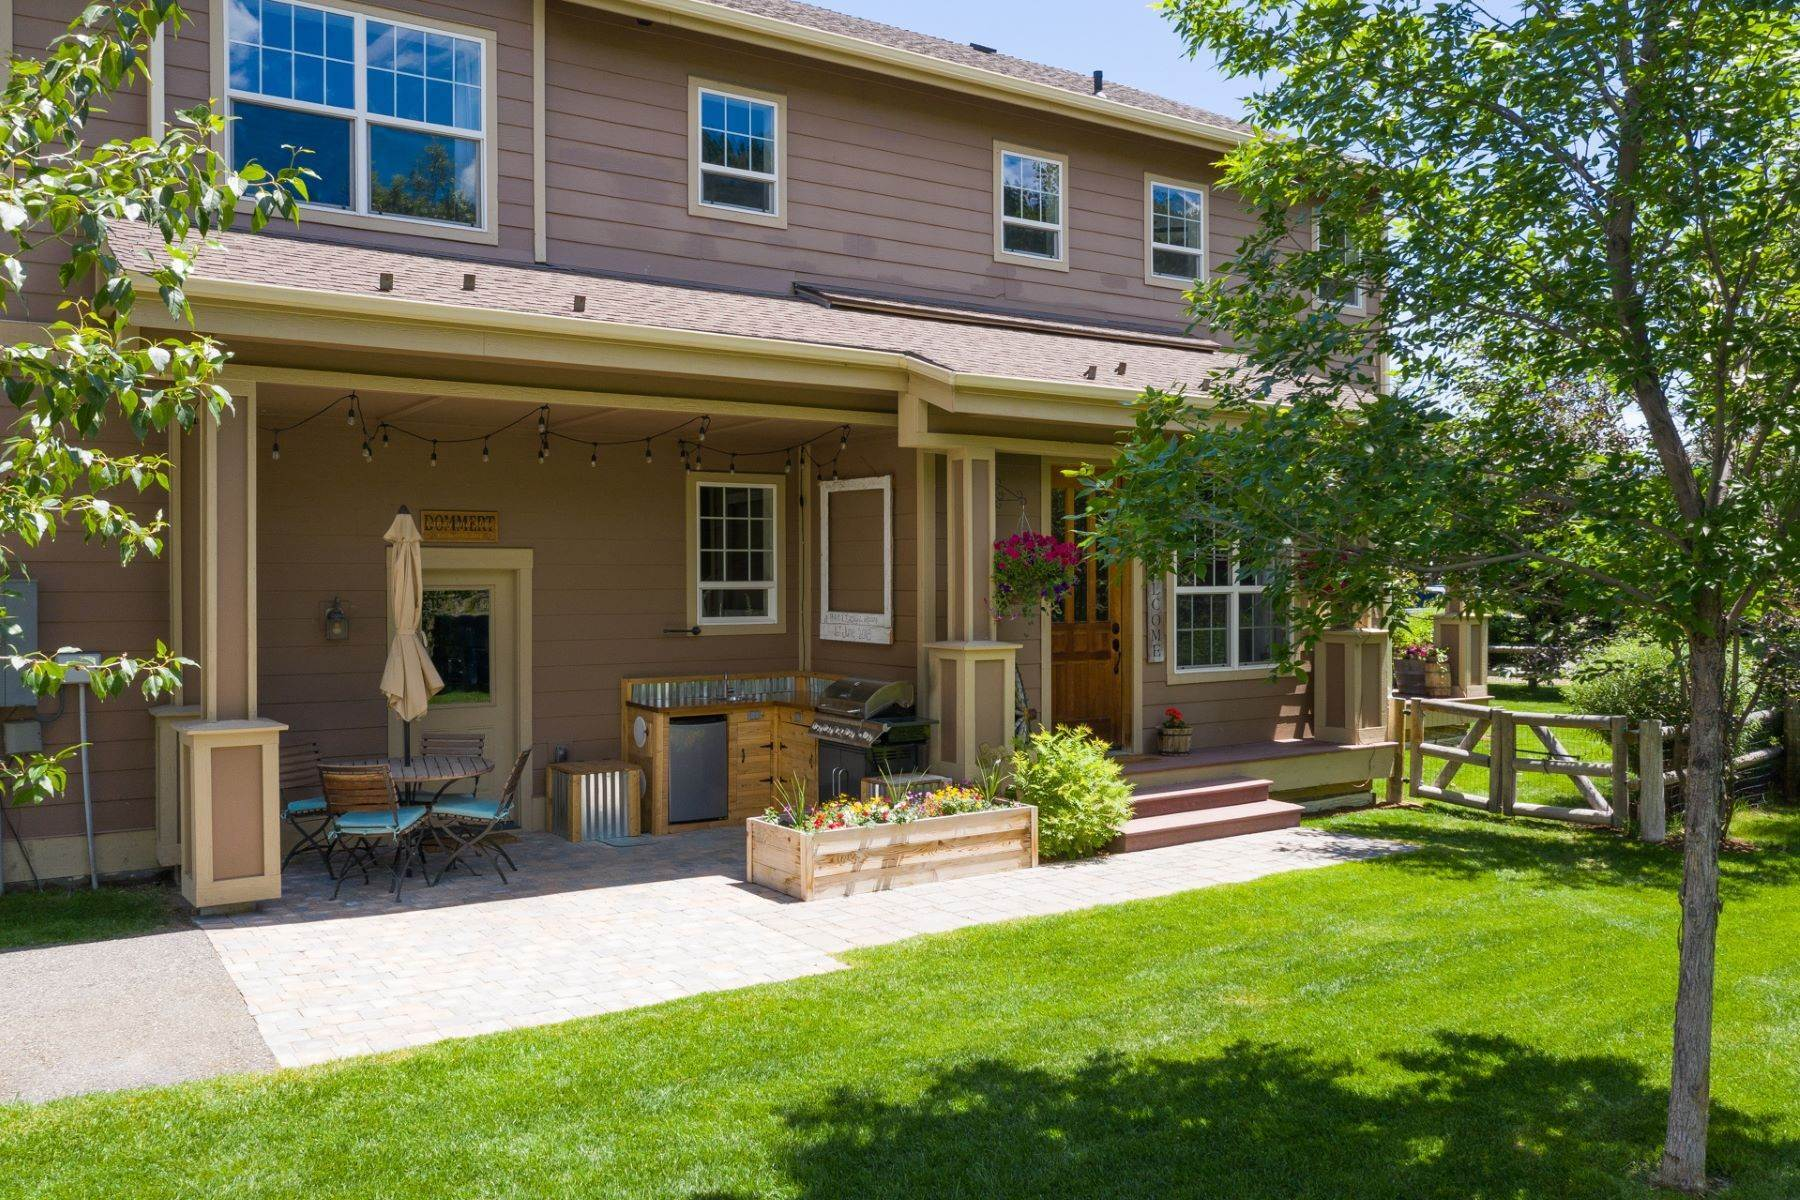 Duplex Homes for Sale at Excellent Location, Value and Opportunity 270 Durance Street Ketchum, Idaho 83340